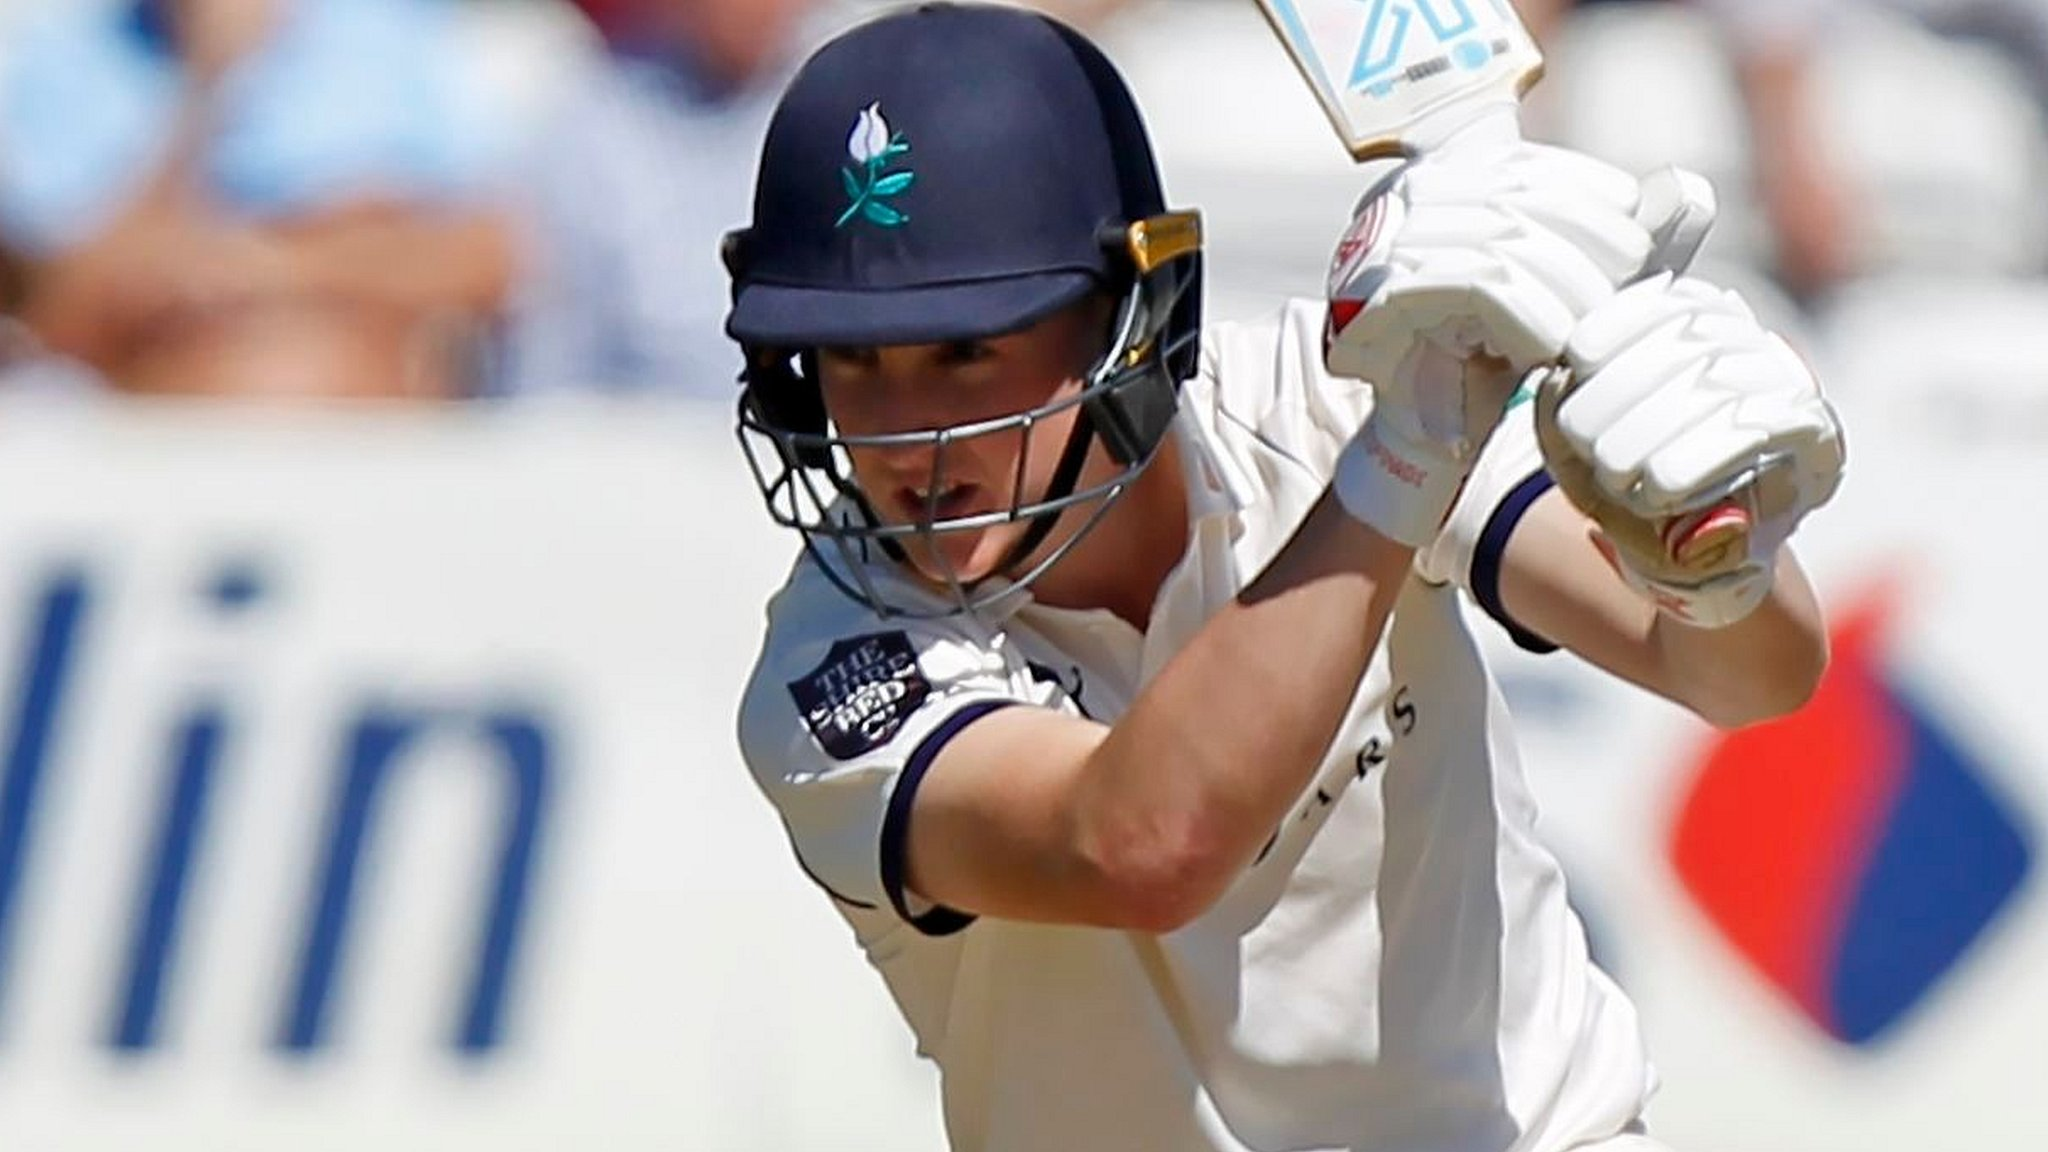 County Championship: Yorkshire bat out draw with Hampshire